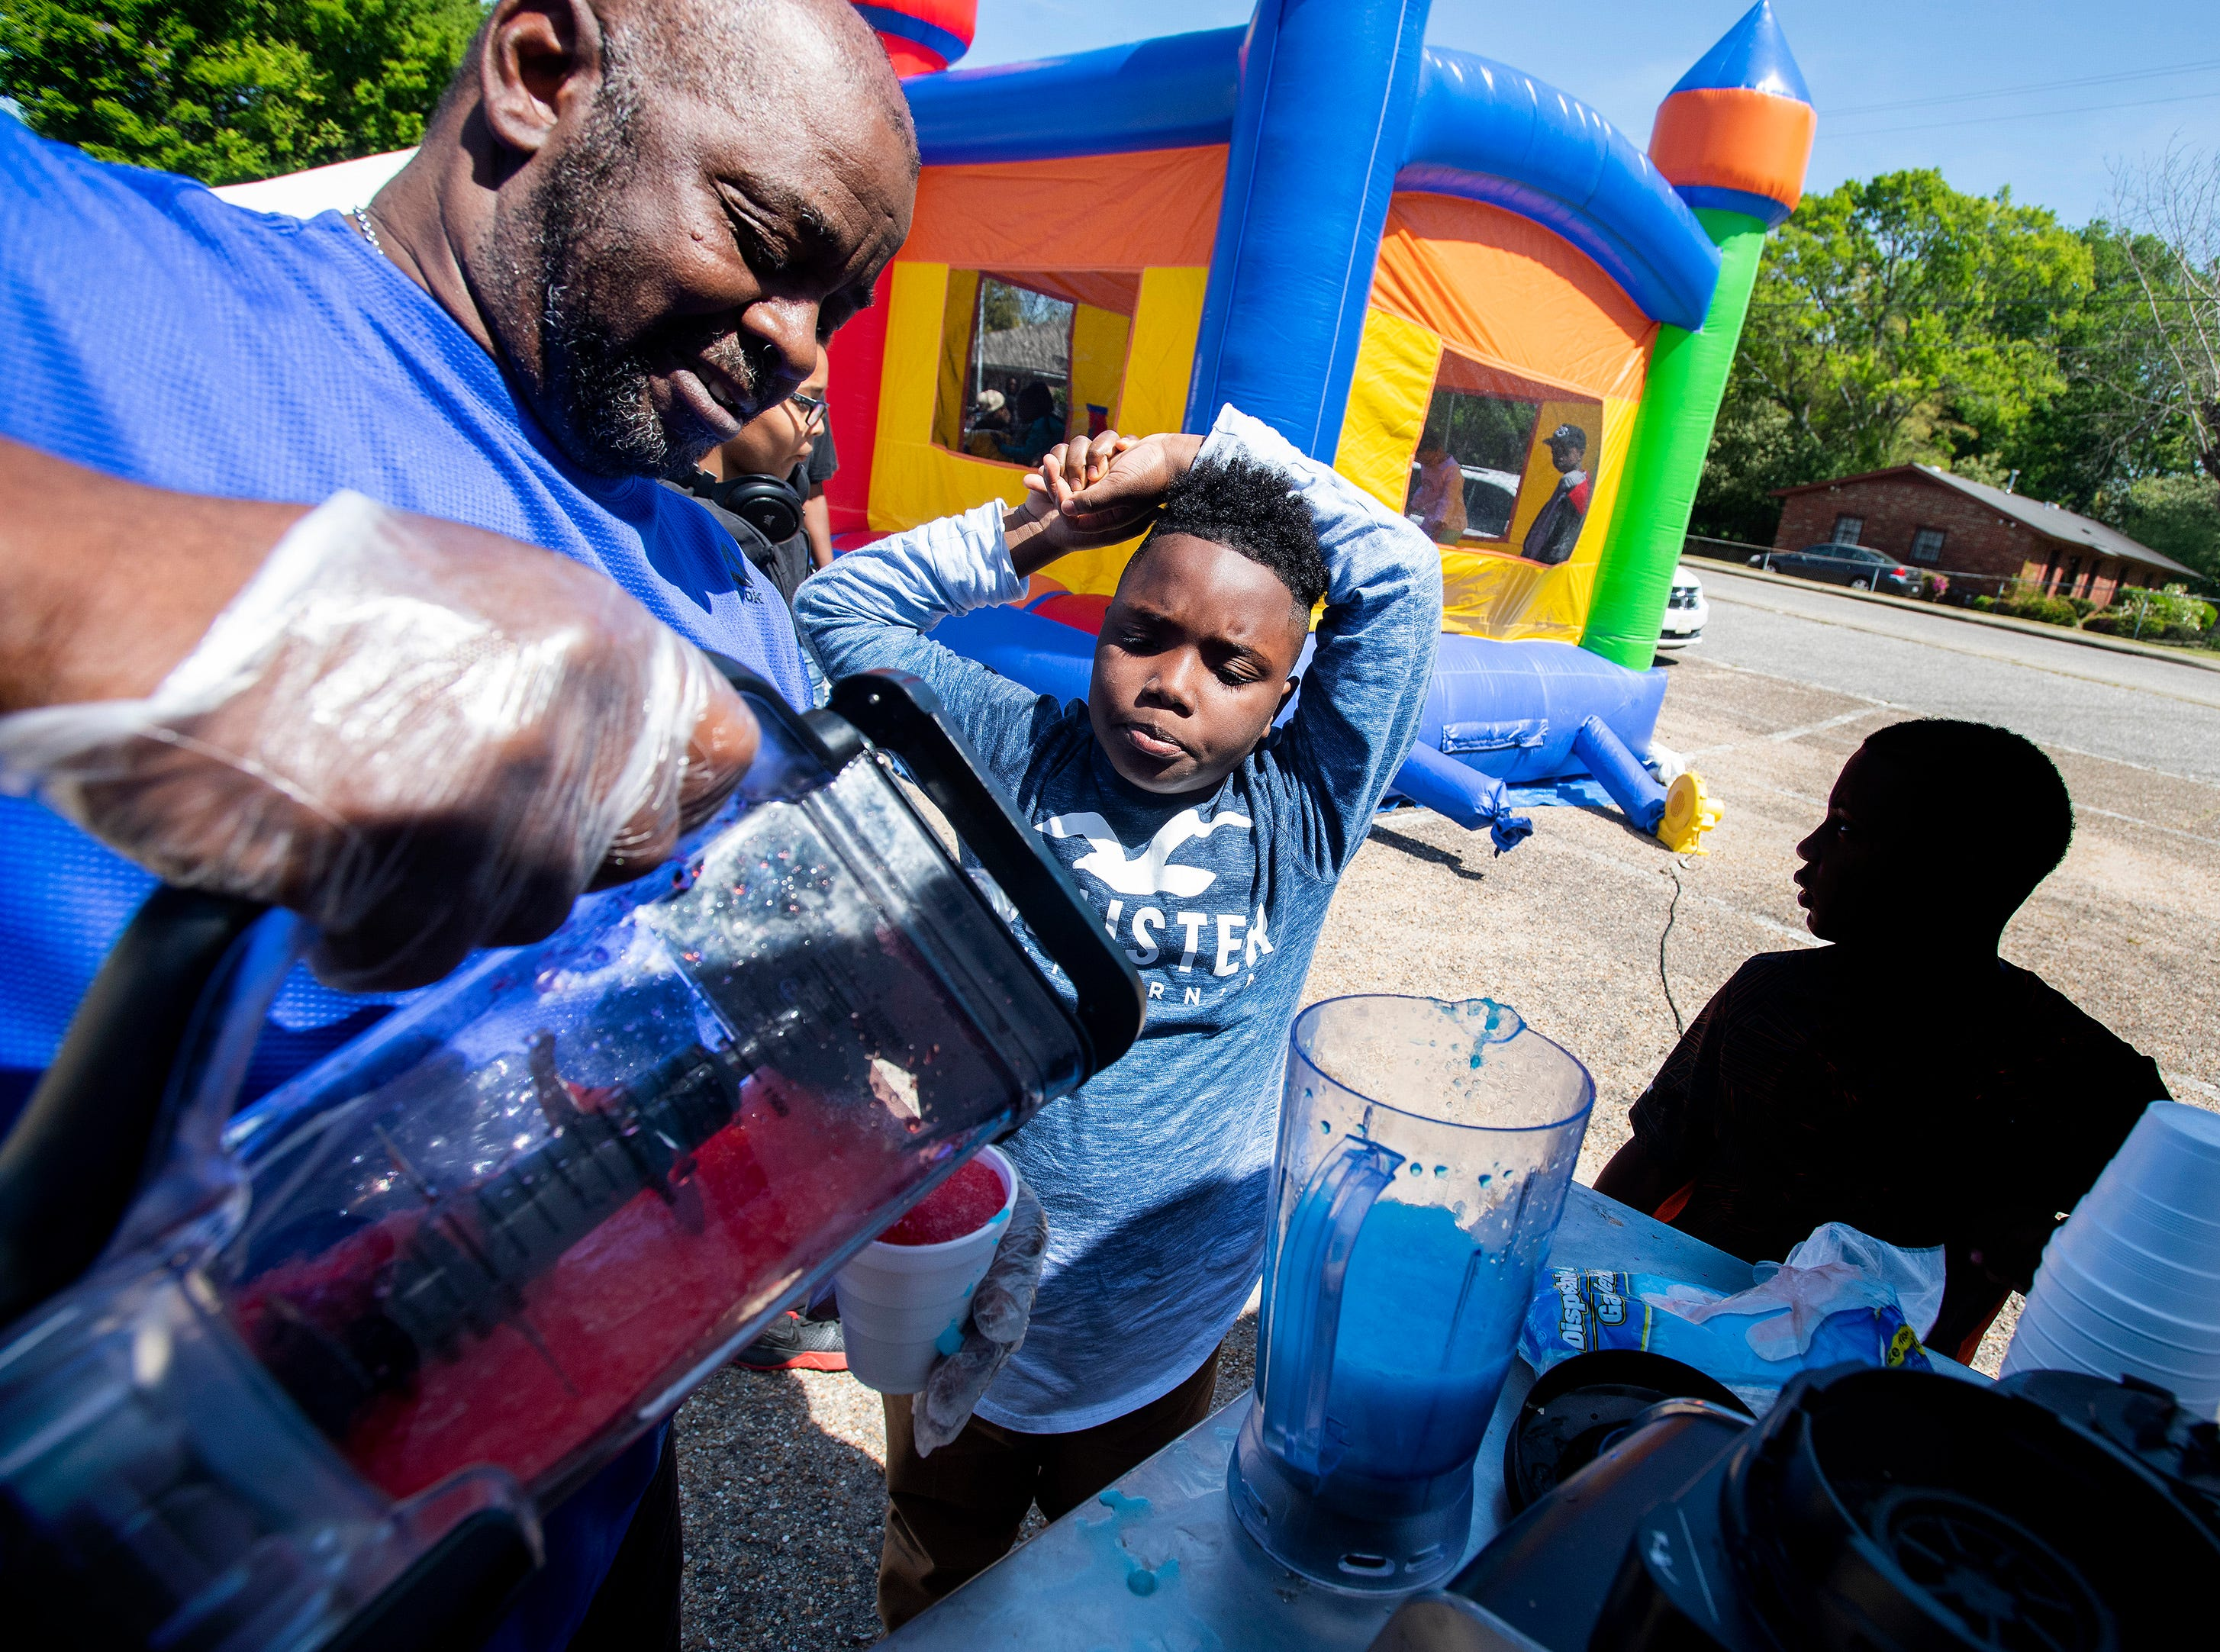 Slushies are served as Flatline Church hosts a block party for the Chisholm neighborhood in Montgomery, Ala., on Saturday March 23, 2019.